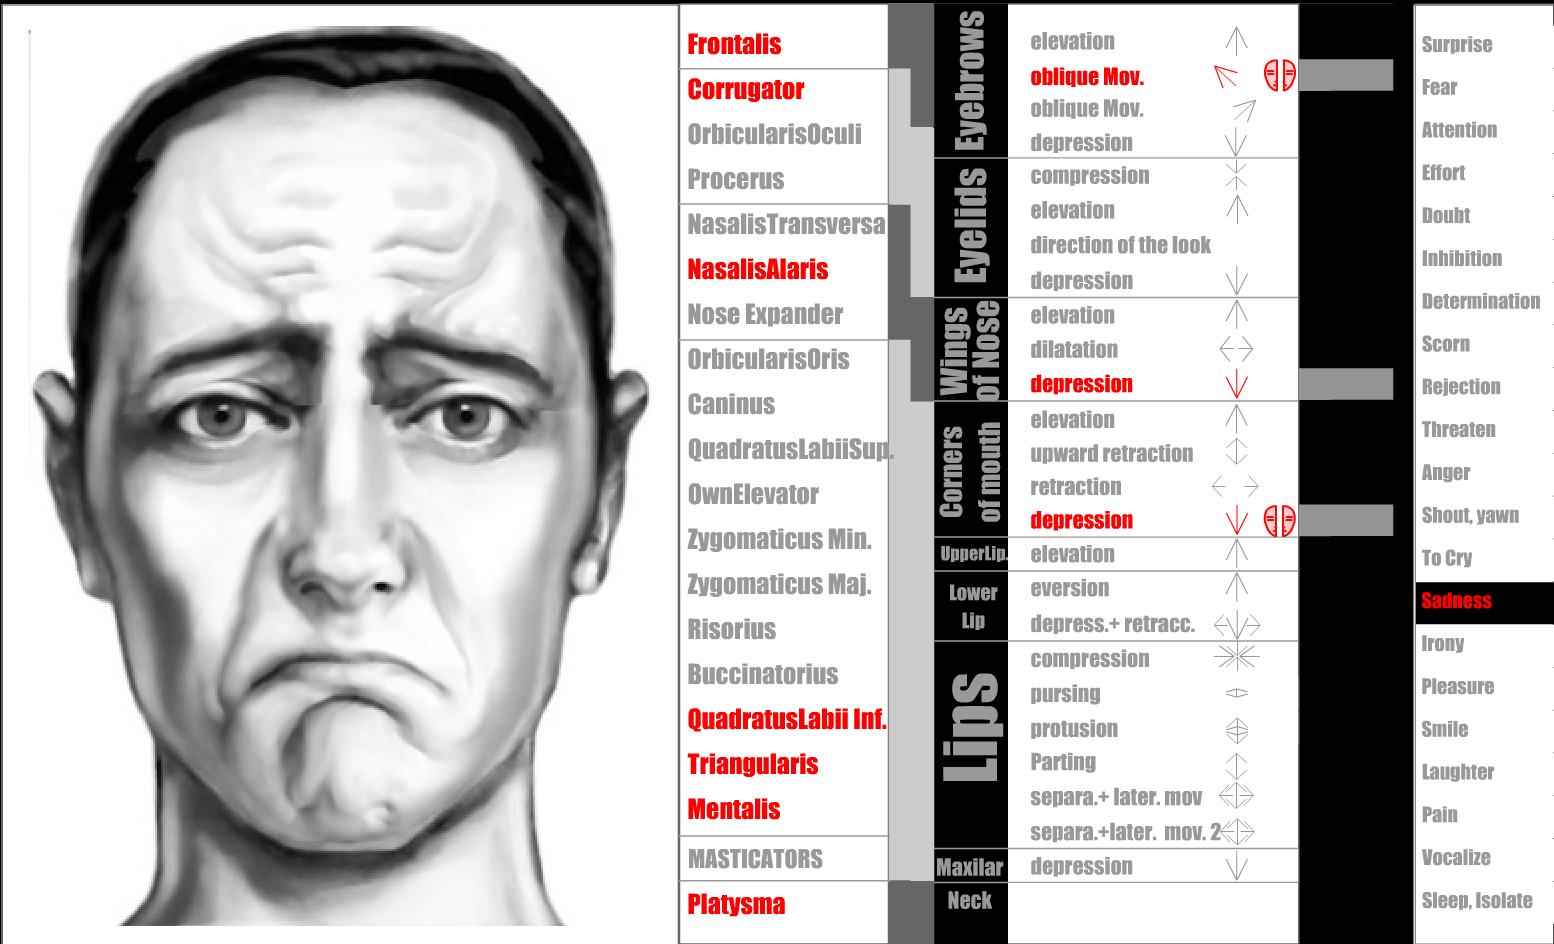 facial emotion recognition systems Analysis of emotion recognition using facial expressions, speech and multimodal information  although several automatic emotion recognition systems have.